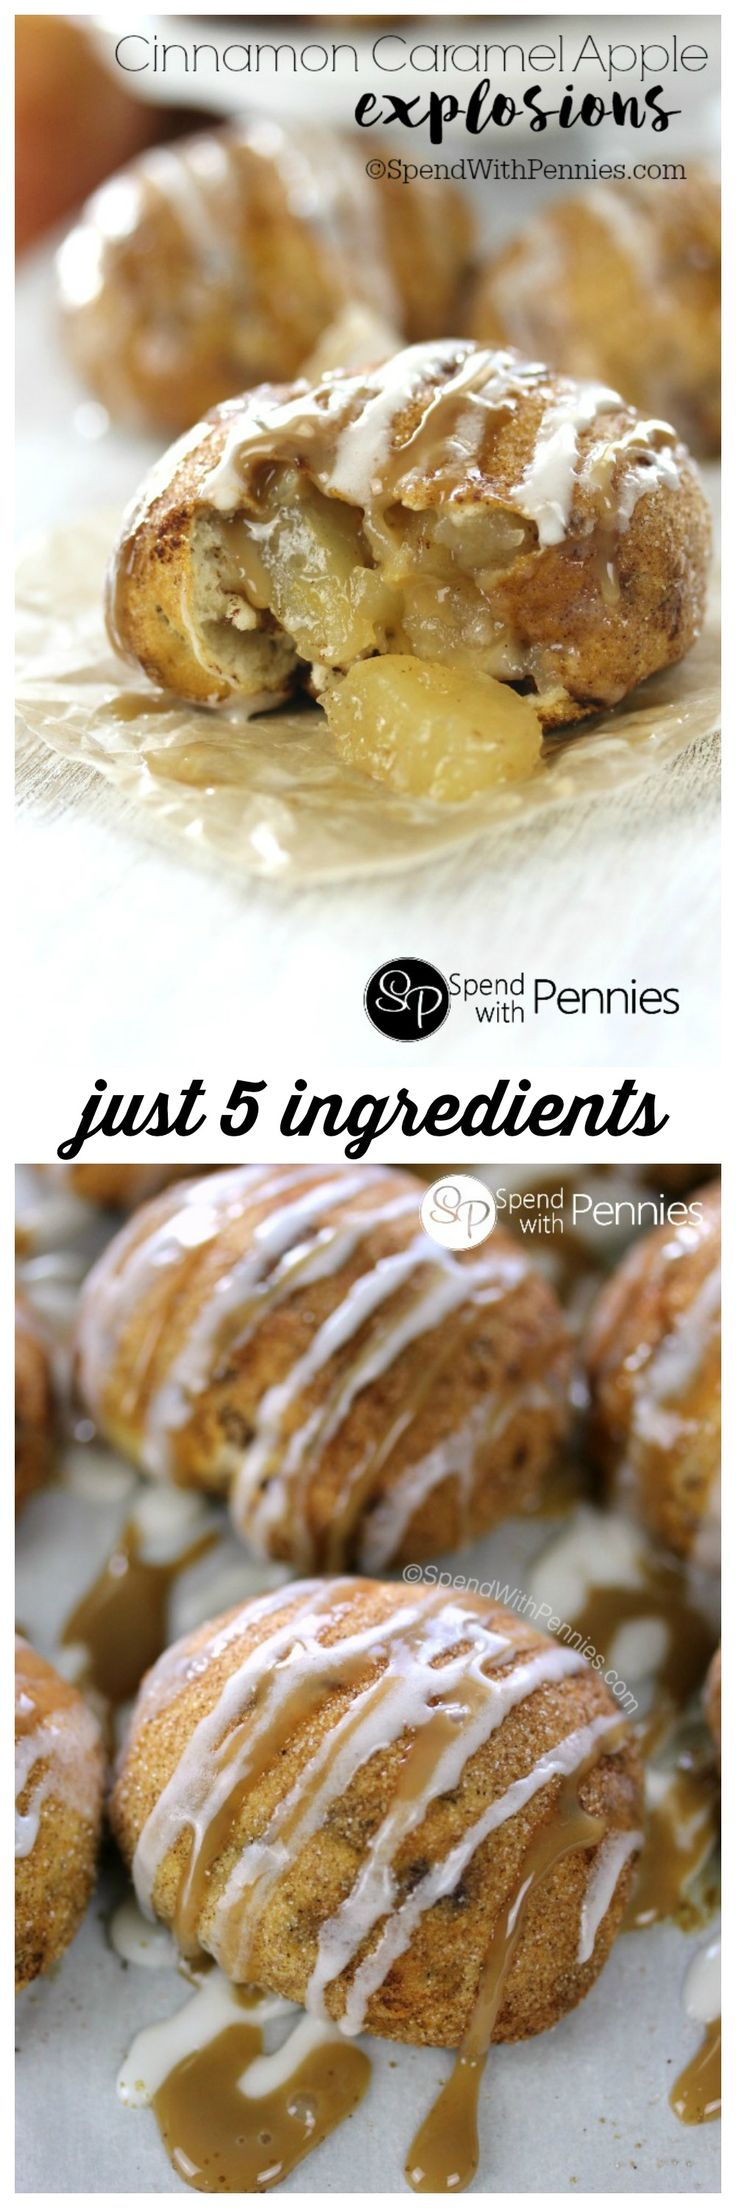 Cinnamon Caramel Apple Explosions! A cinnamon sugar crusted roll filled with warm apple pie filling & drizzled with caramel. These take just minutes to make  and are completely irresistible!